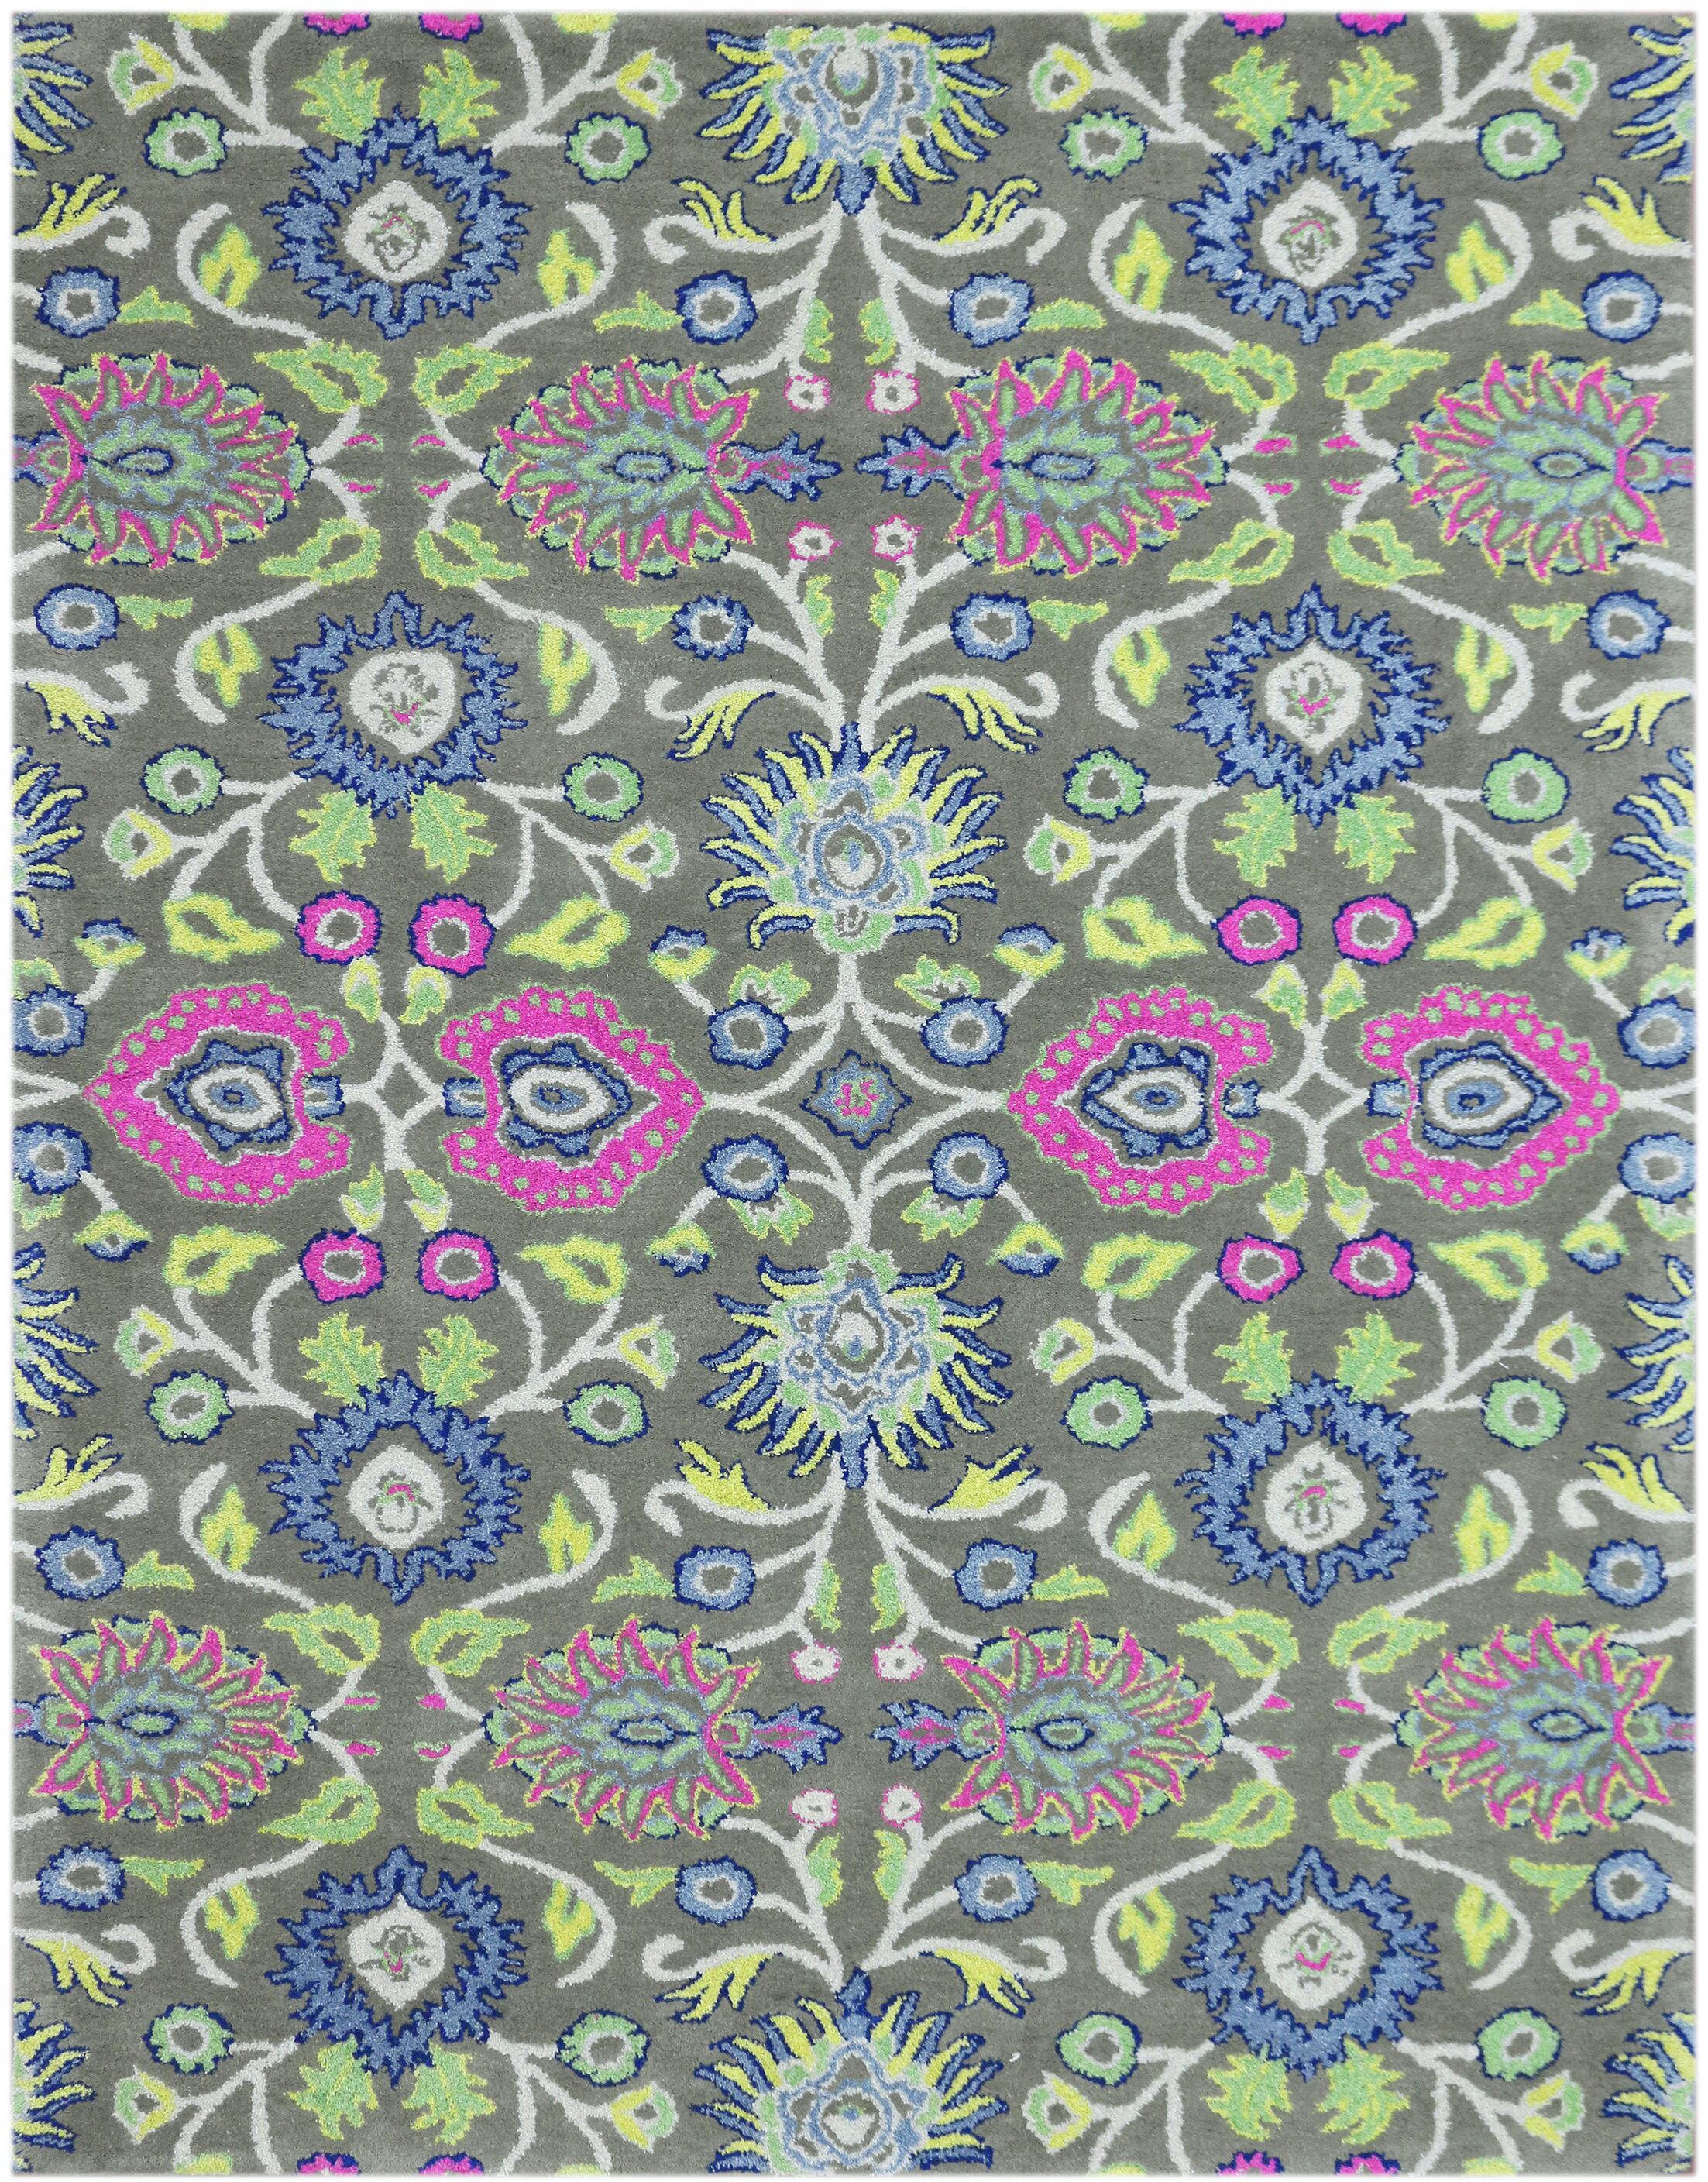 Harshbarger Hand-Tufted Wool Olive Green Area Rug Rug Size: Rectangle 8' x 11'